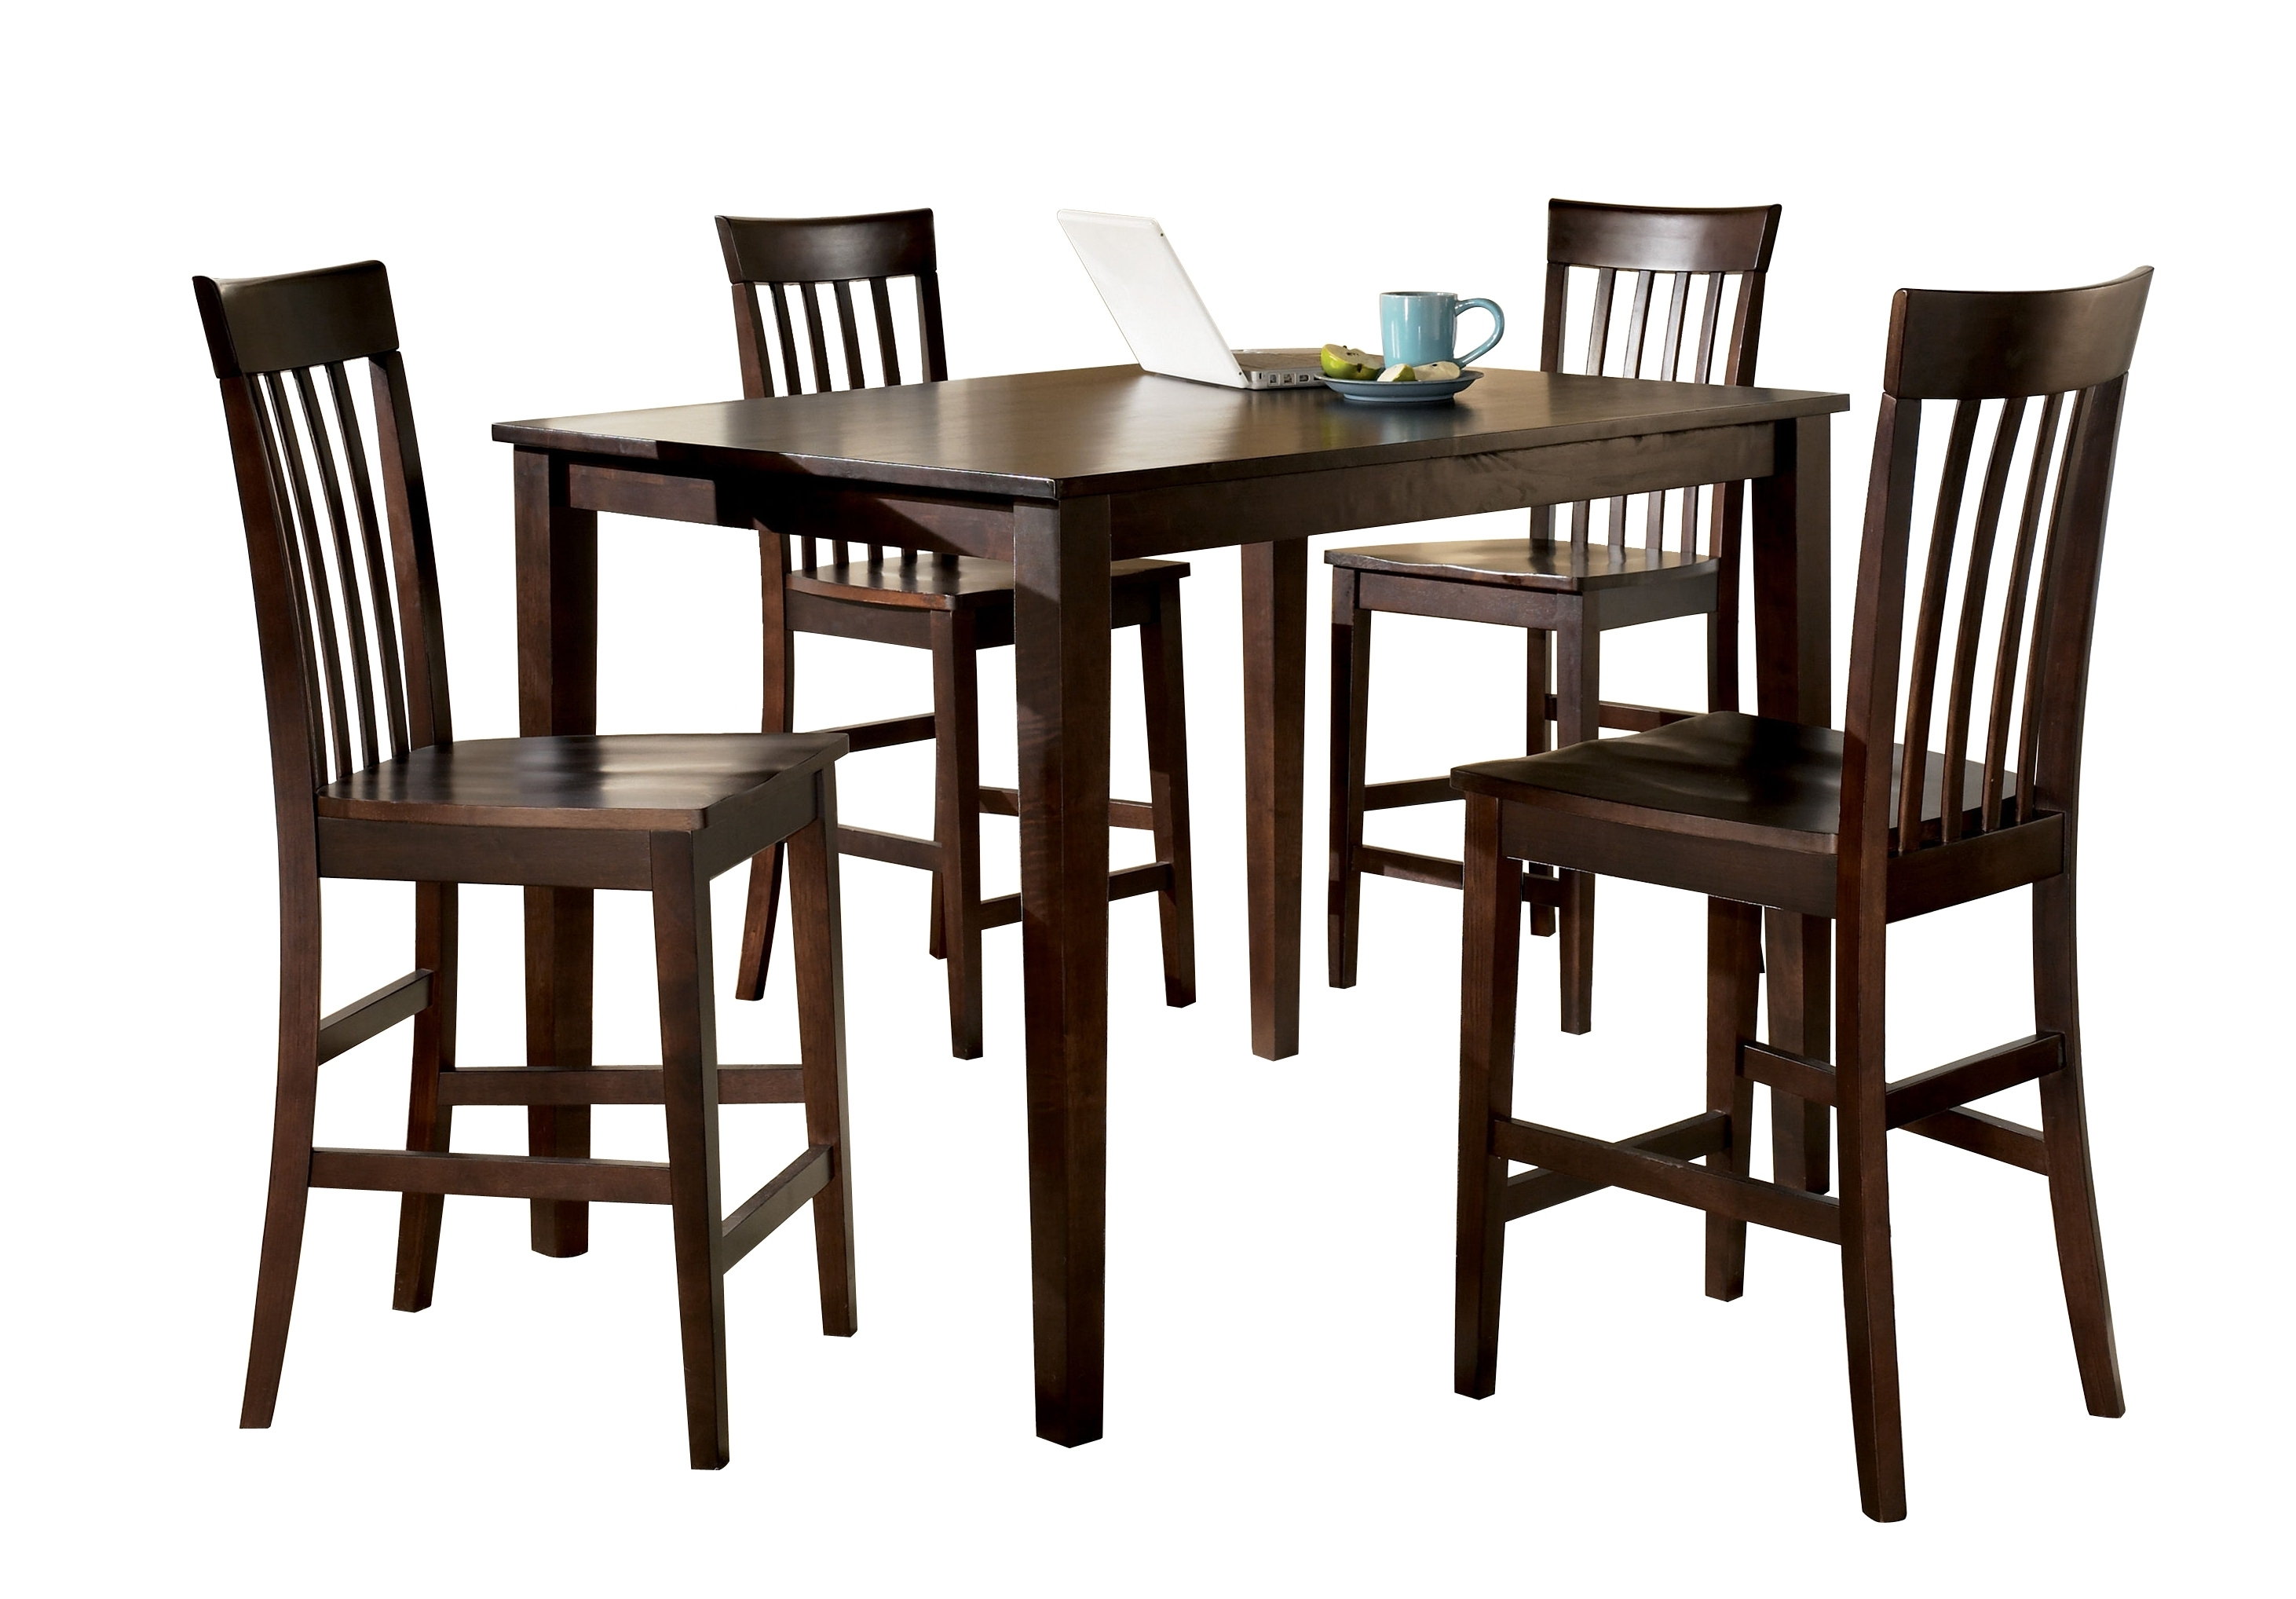 Ashley Furniture Hyland 5Pc Counter Table Set | The Classy Home With Regard To Current Hyland 5 Piece Counter Sets With Stools (Image 3 of 20)